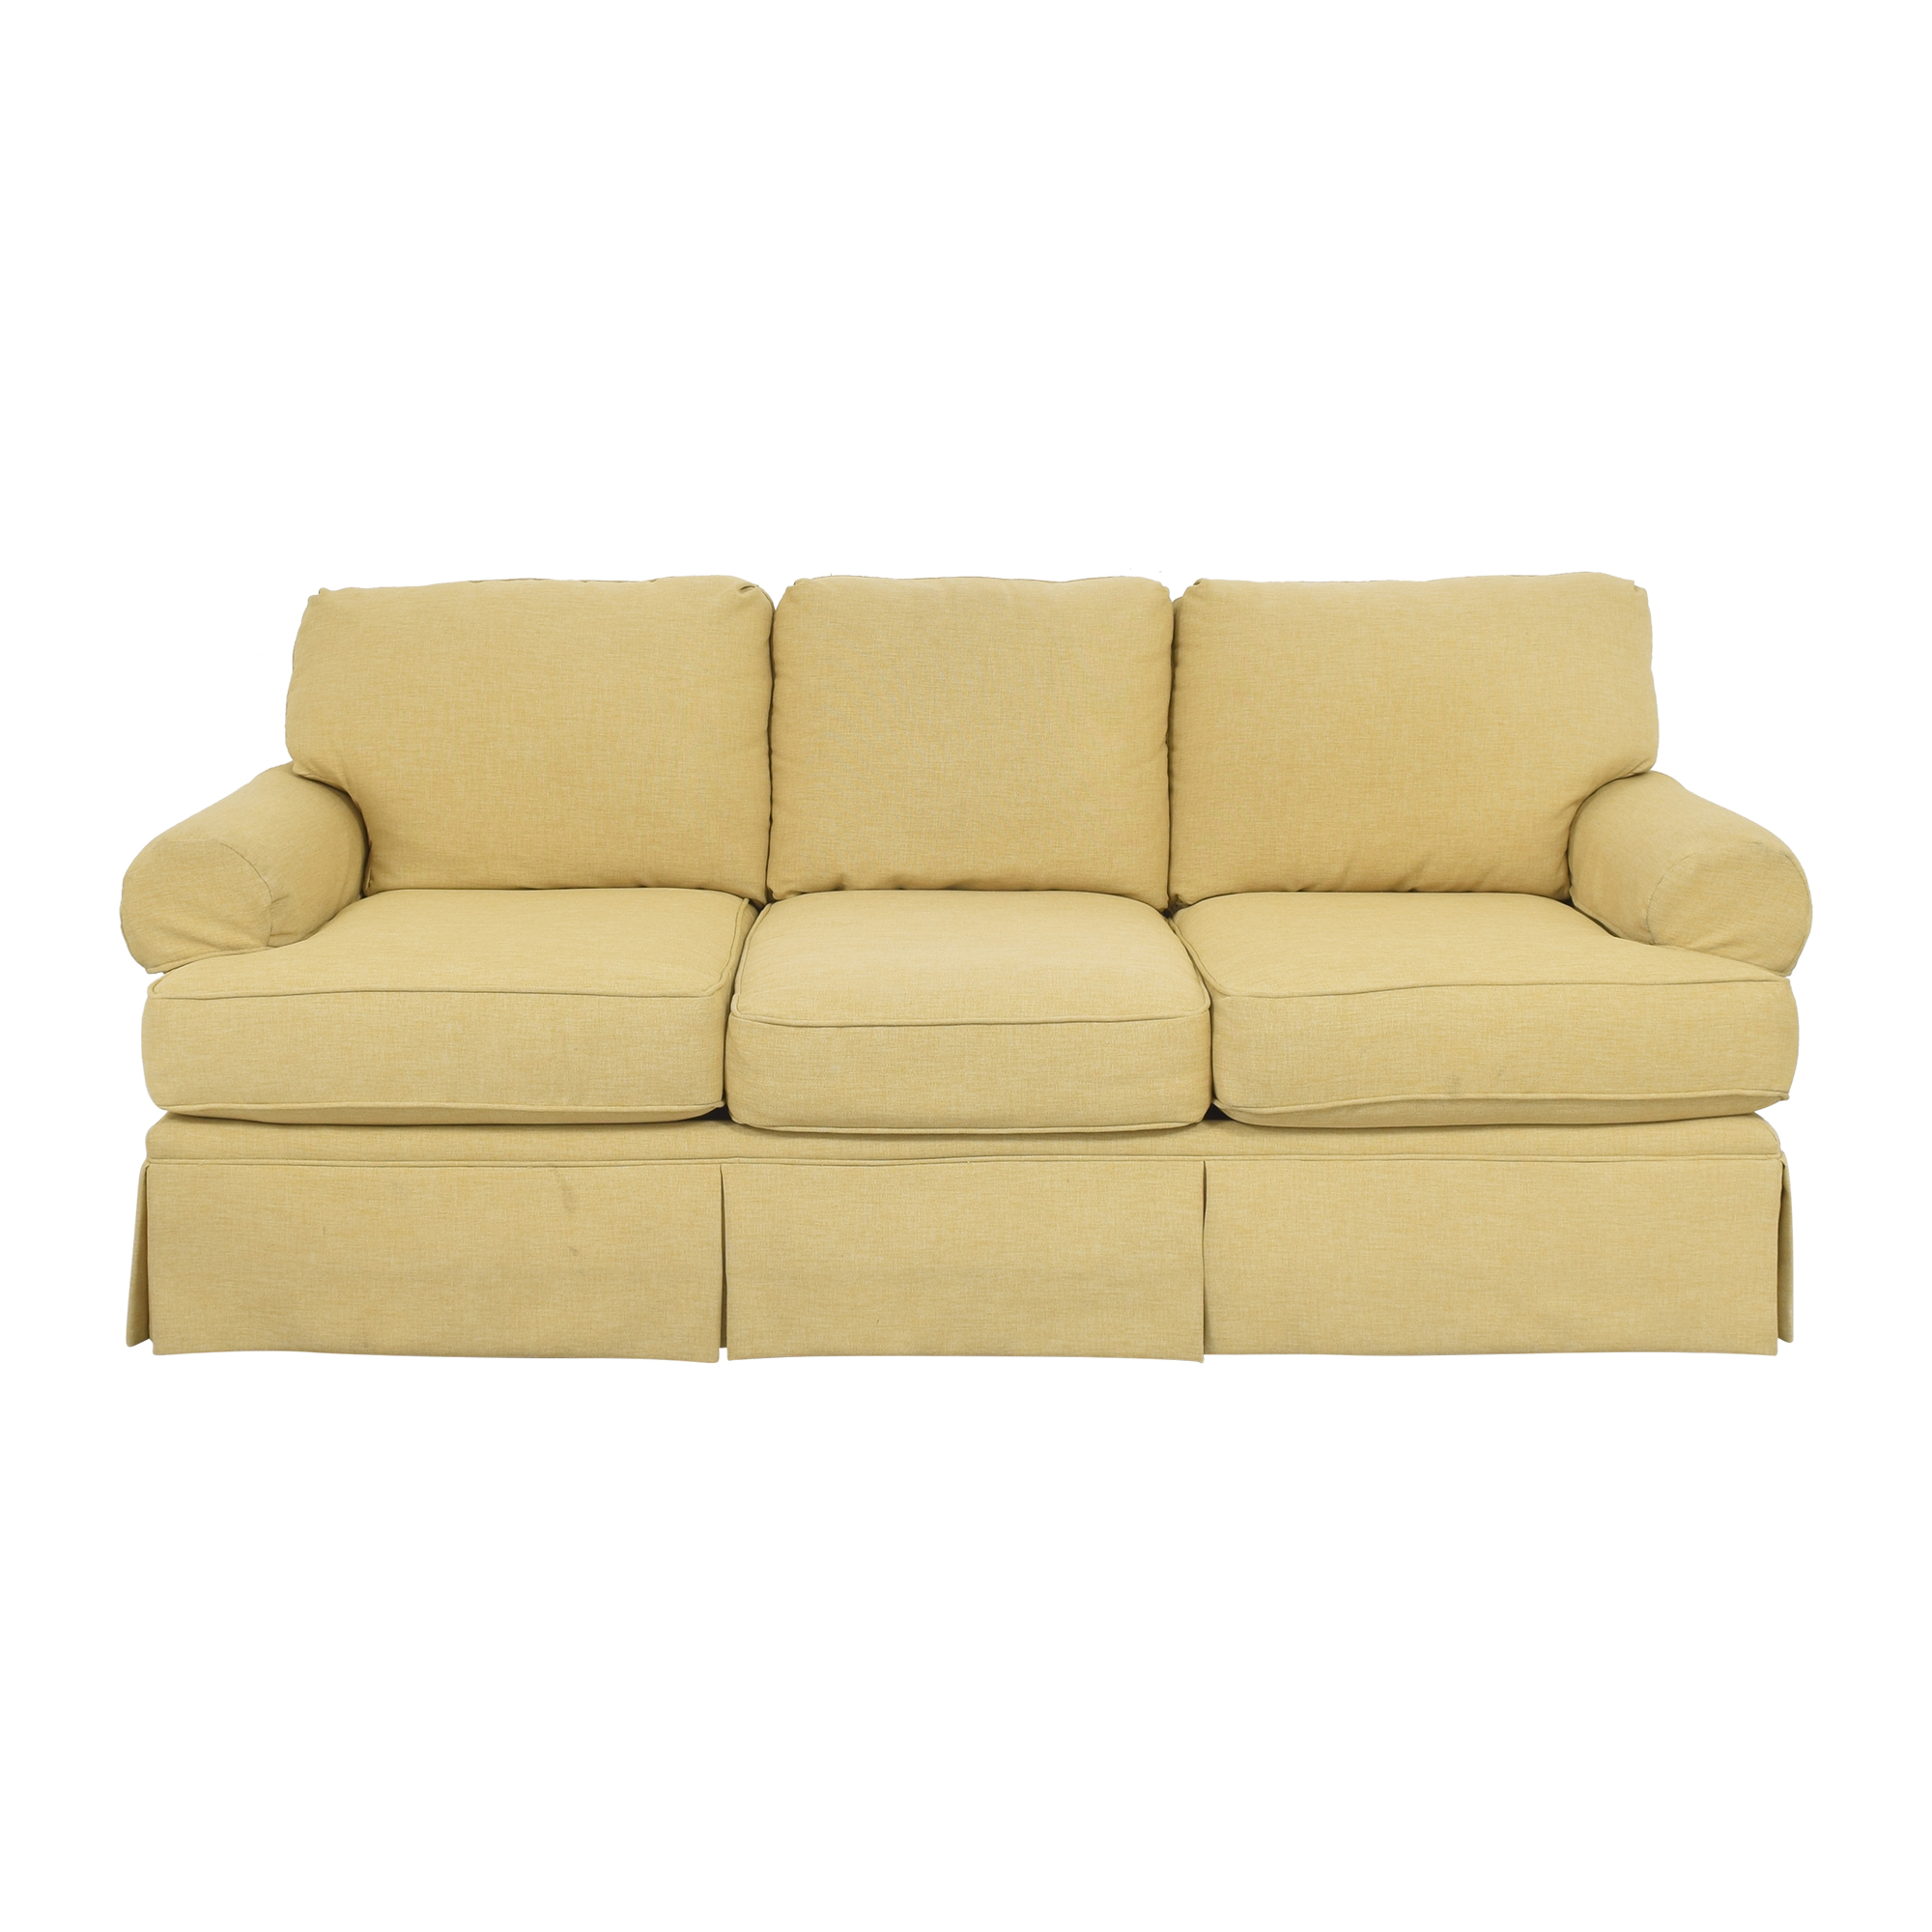 Craftmaster Furniture Craftmaster Furniture Three Cushion Sofa Sofas